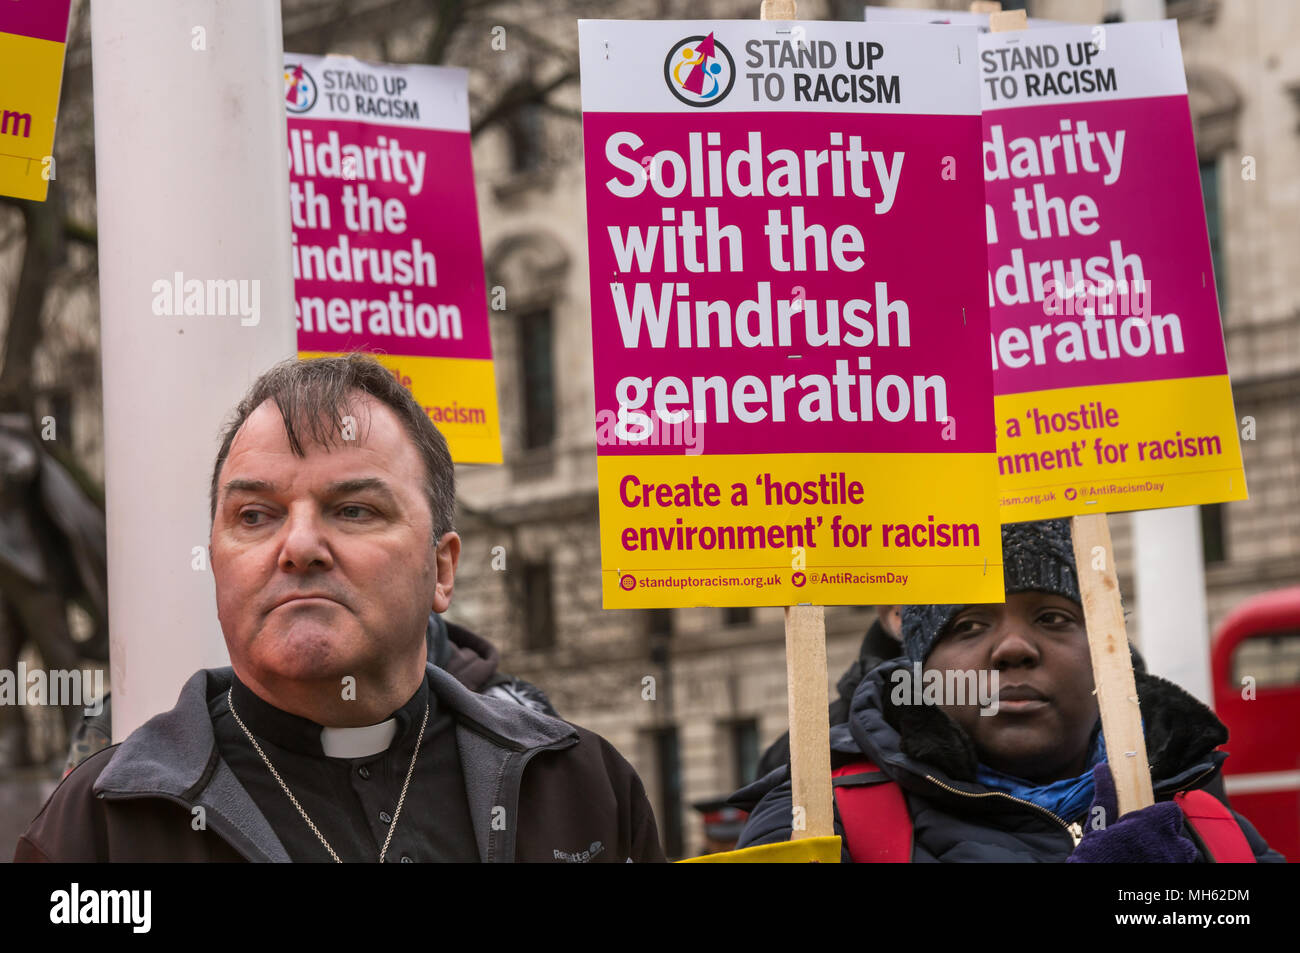 London, UK. 30th April 2018.  A man in a clerical collar at the protest in support of the petition calling for an end to the deportations of migrants in the 'Windrush generation' who arrived in Britain between 1948 and 1971. It calls on the government to change the burden of proof which means they are now required to prove their right to remain, and to provide compensation for any loss and hurt.. re for many years, paying taxes and raising families here and have long Credit: Peter Marshall/Alamy Live News - Stock Image